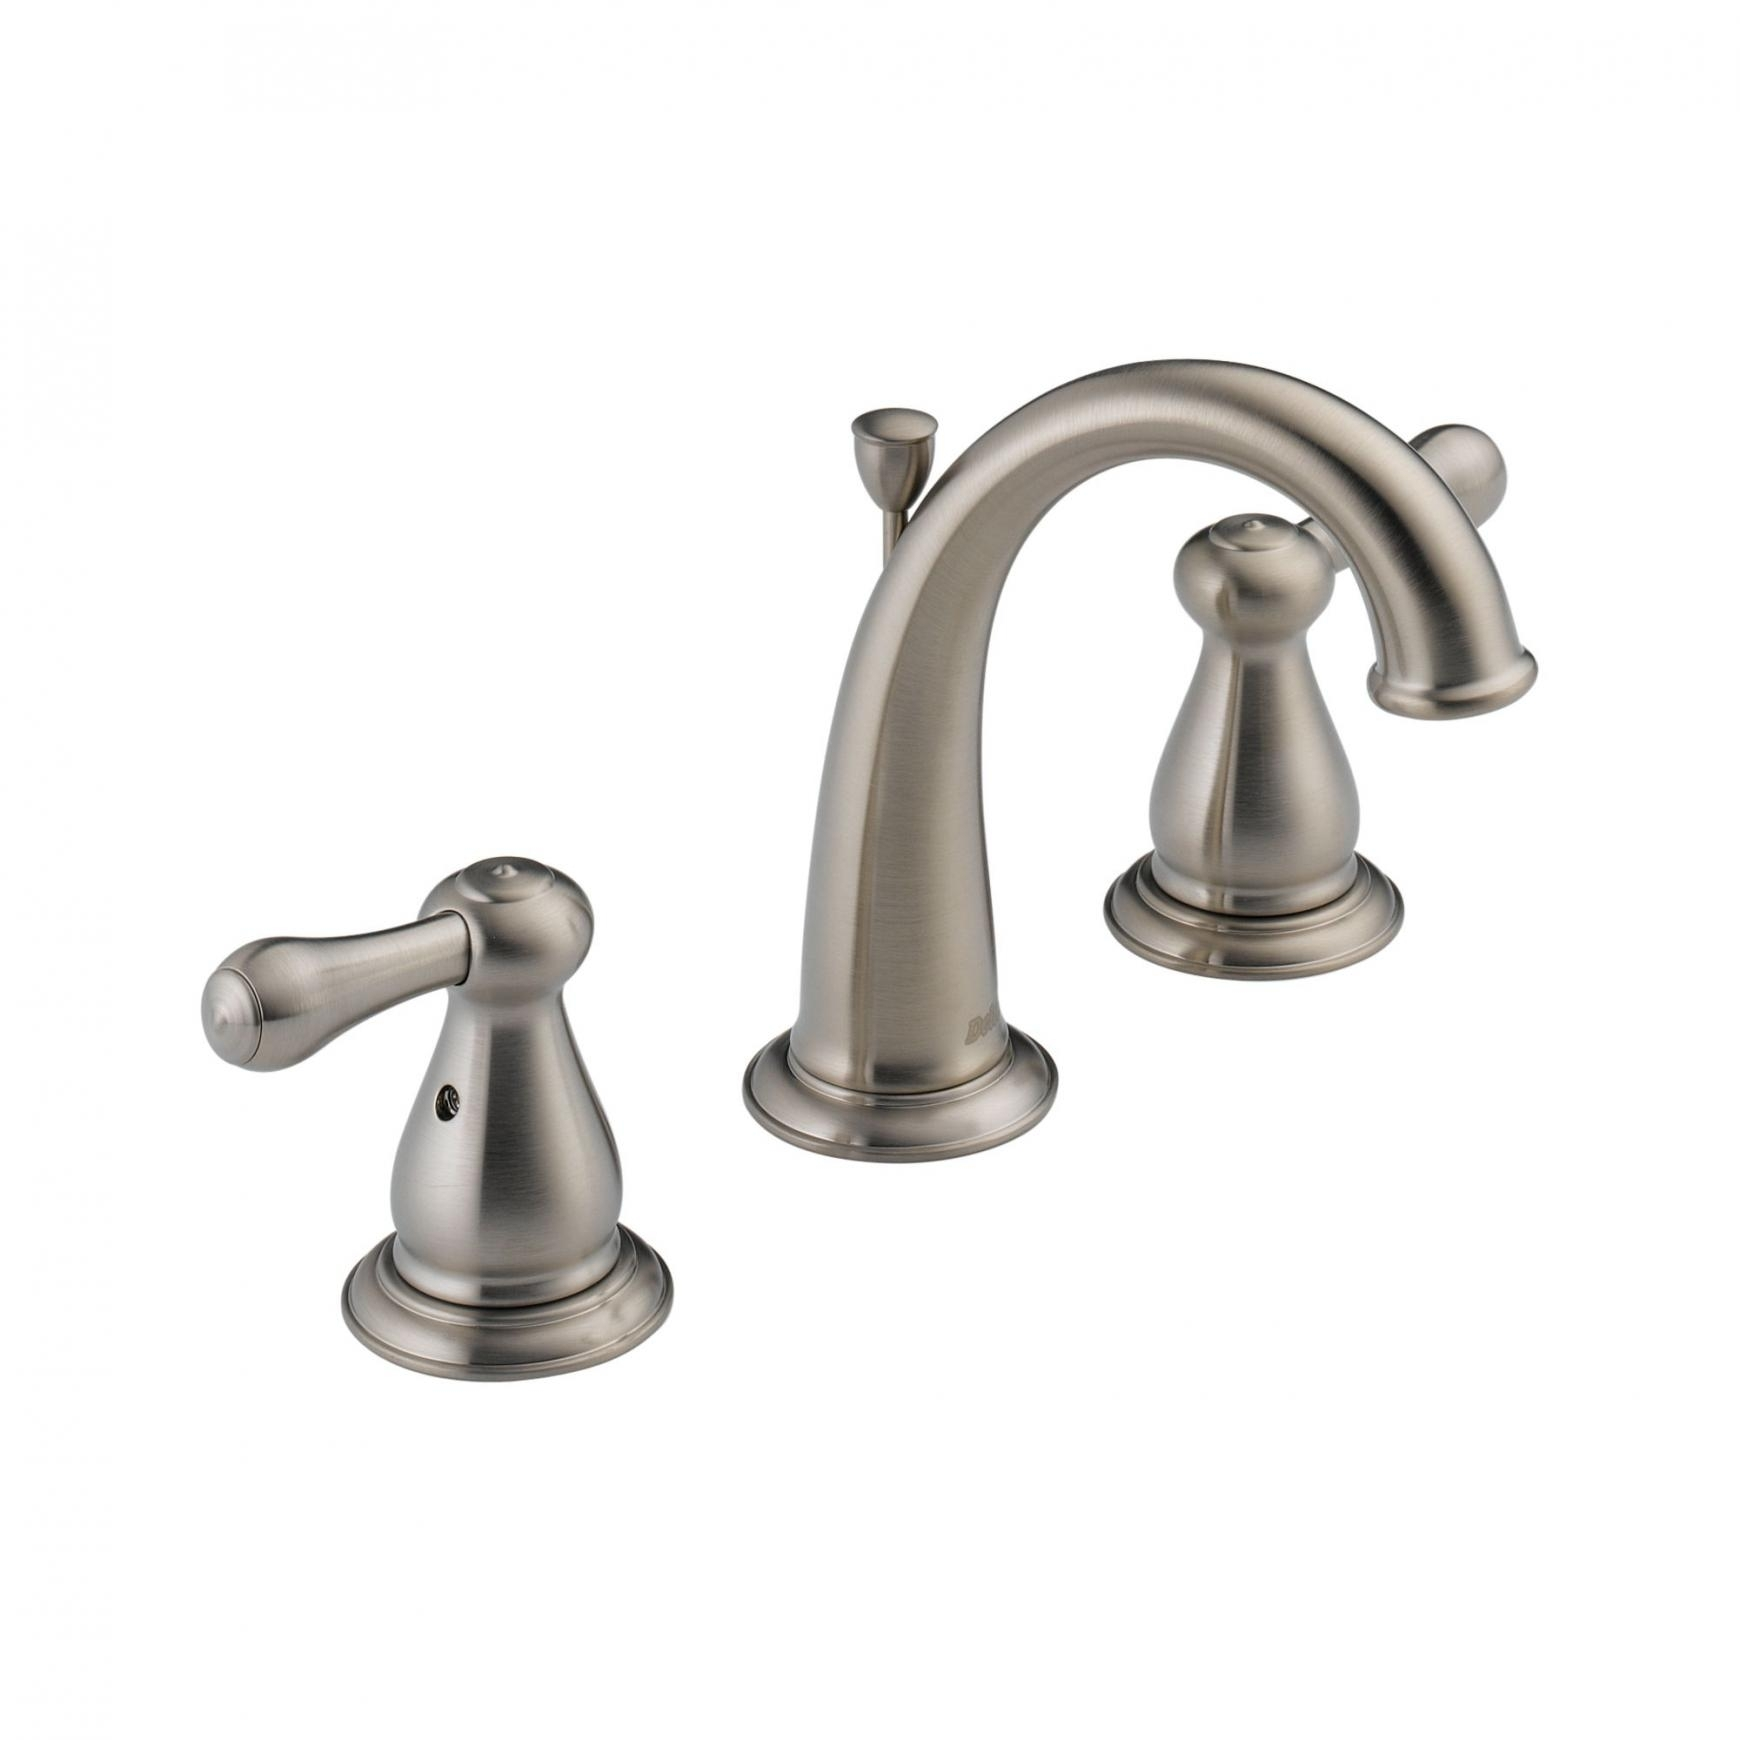 Ideas, delta faucets customer service sinks and faucets decoration with dimensions 1740 x 1740  .